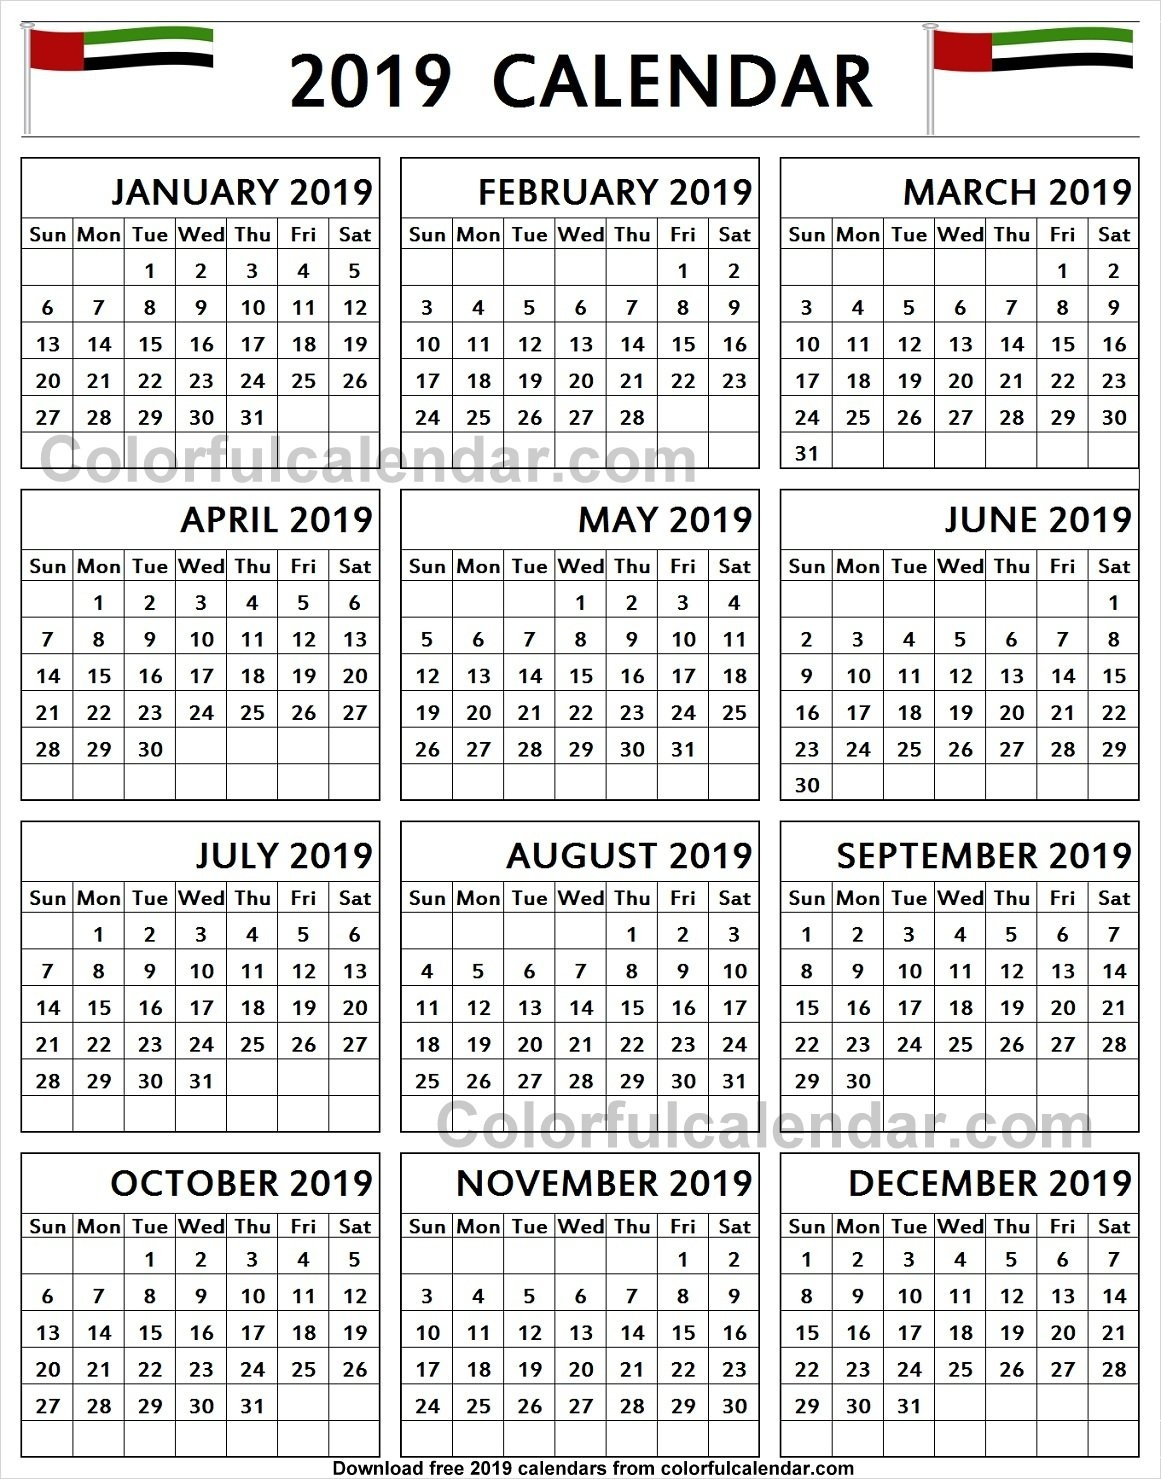 Calendar 2019 Uae Pdf Printable Template With Notes | Holidays U A E Calendar 2019